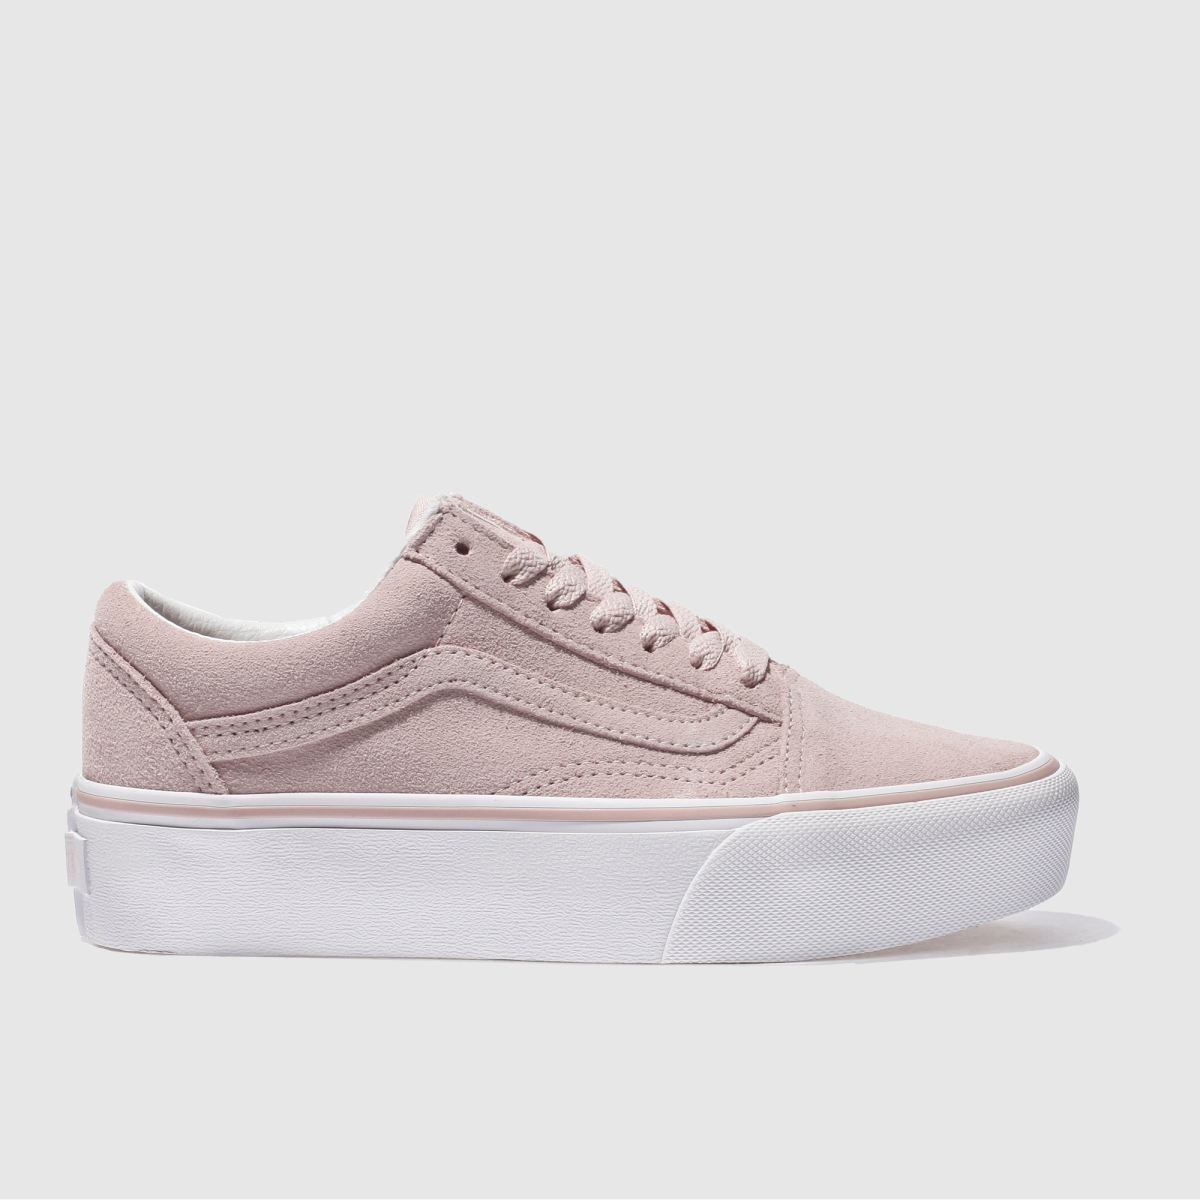 vans pale pink old skool platform trainers bluewater. Black Bedroom Furniture Sets. Home Design Ideas